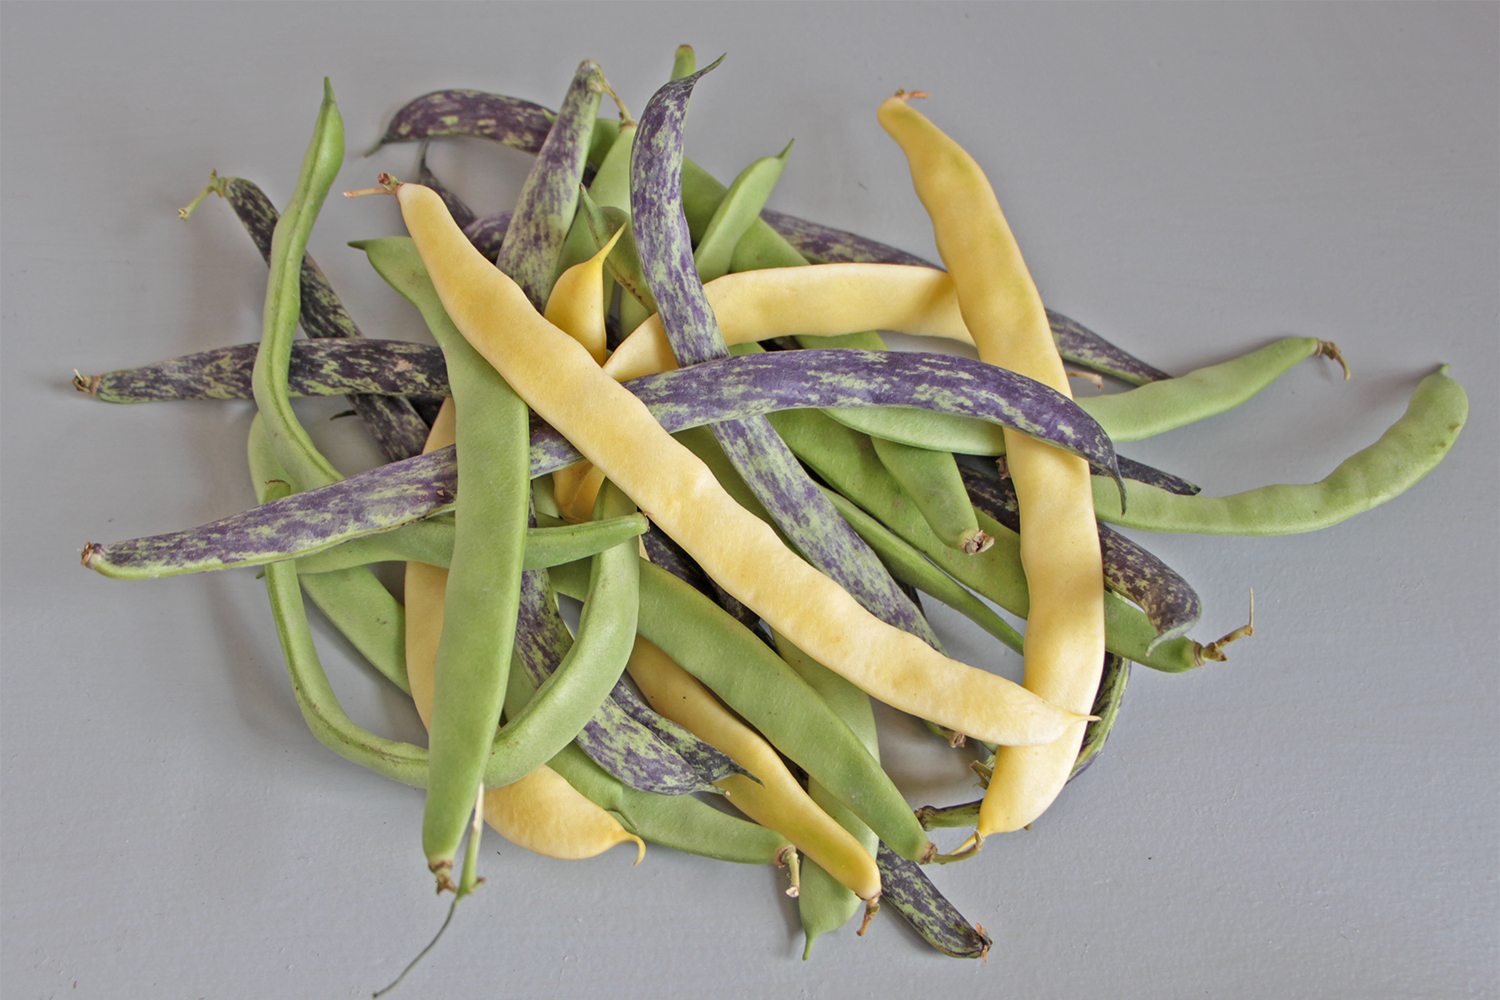 Haricot Vert Plat Haricots Plats Tricolores